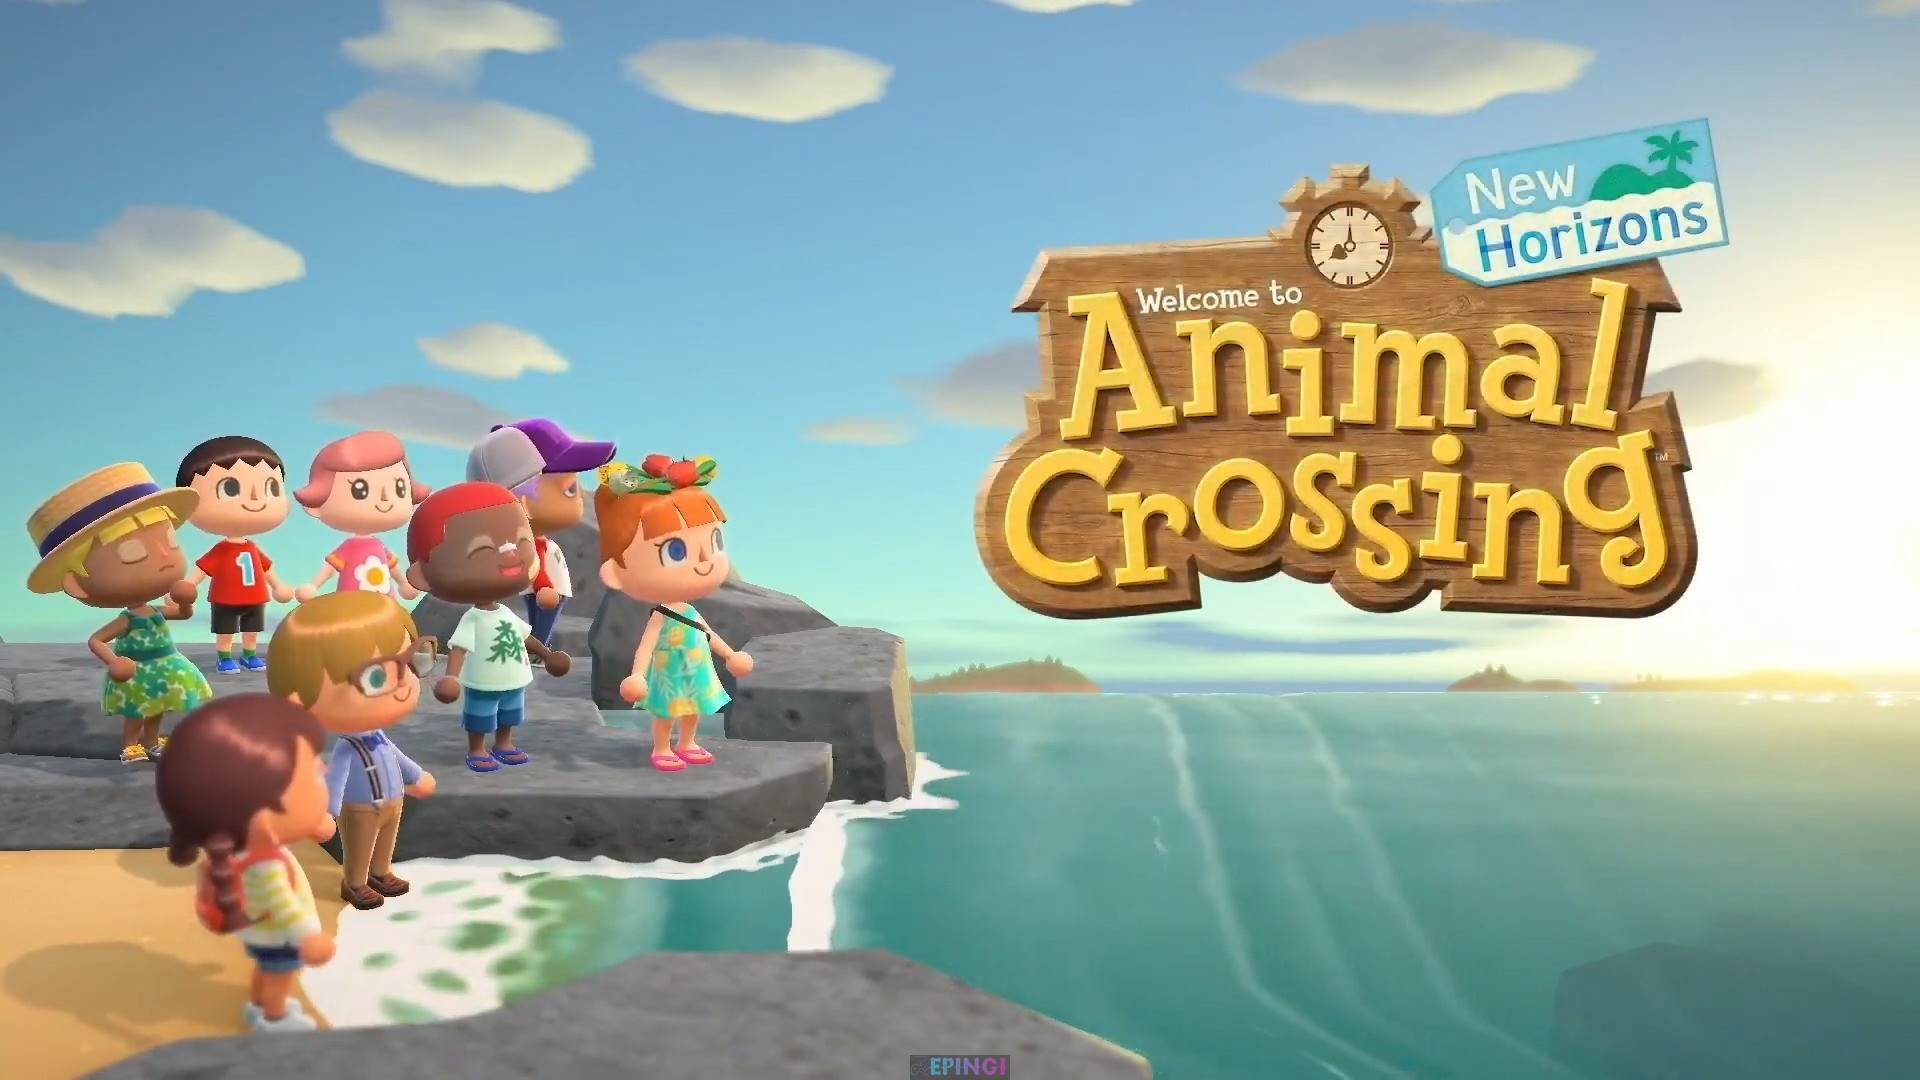 Fireworks Shows, Dreaming, And More Make Their Way To Animal Crossing: New Horizons In New Update – Vol.2